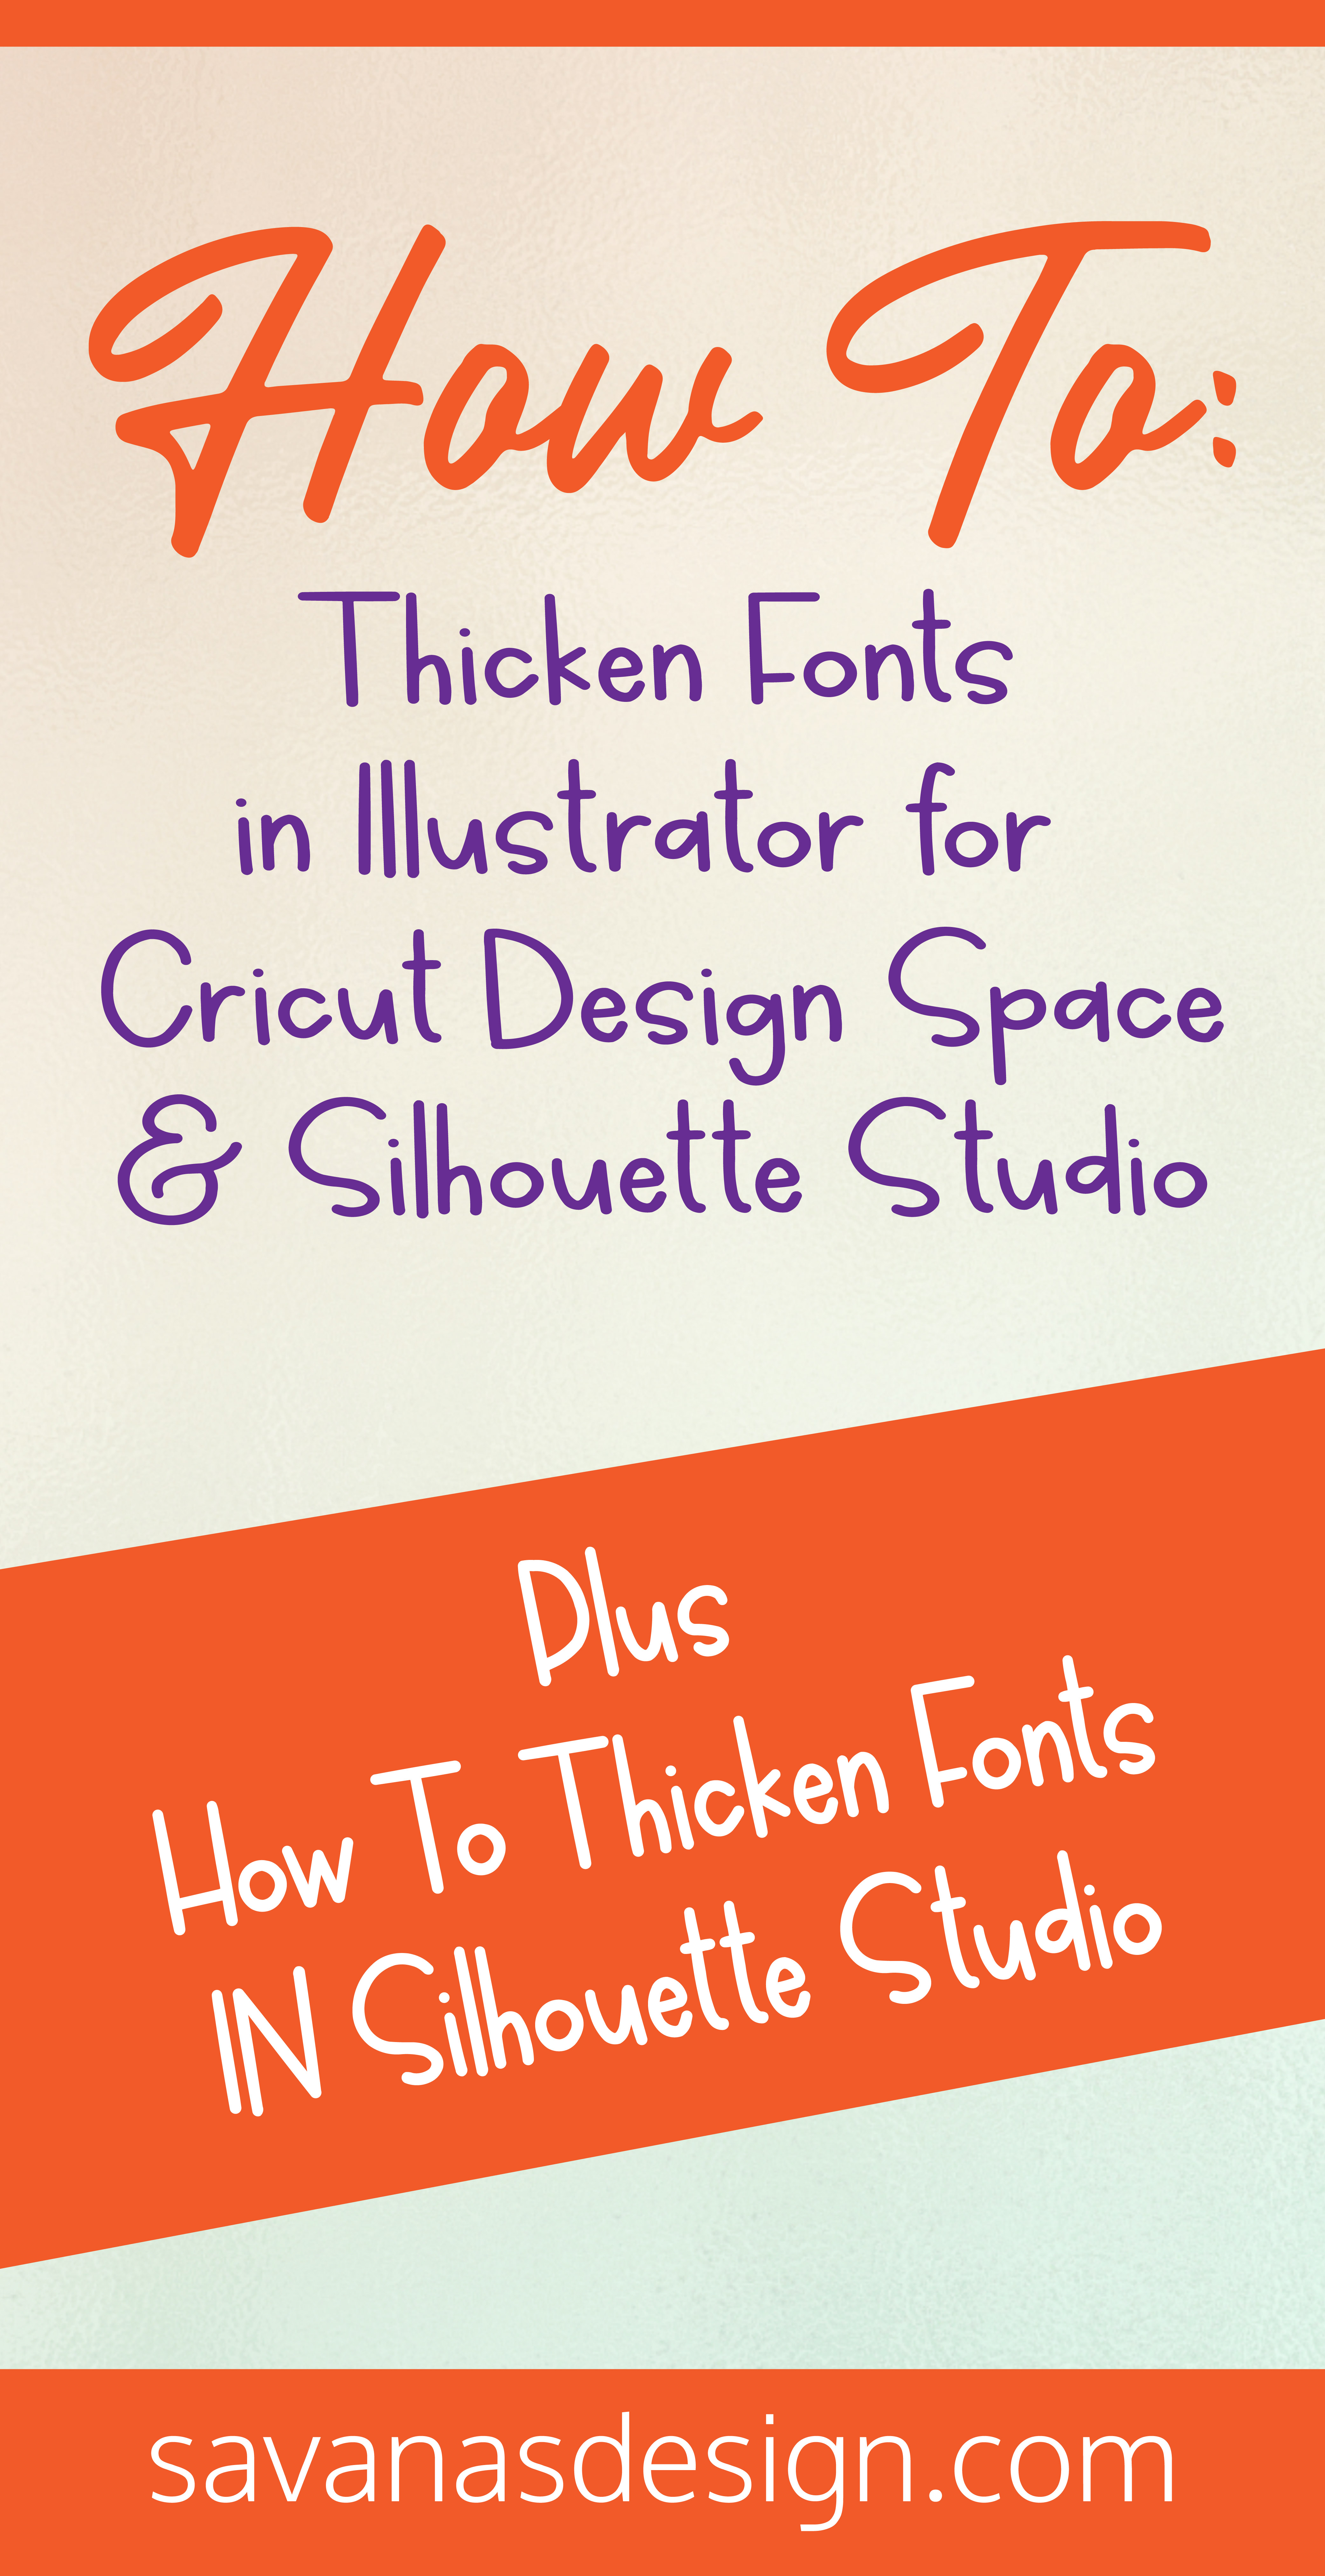 Pinterest Thicken Fonts in Illustrator for Cricut Design Space and Silhouette Studio